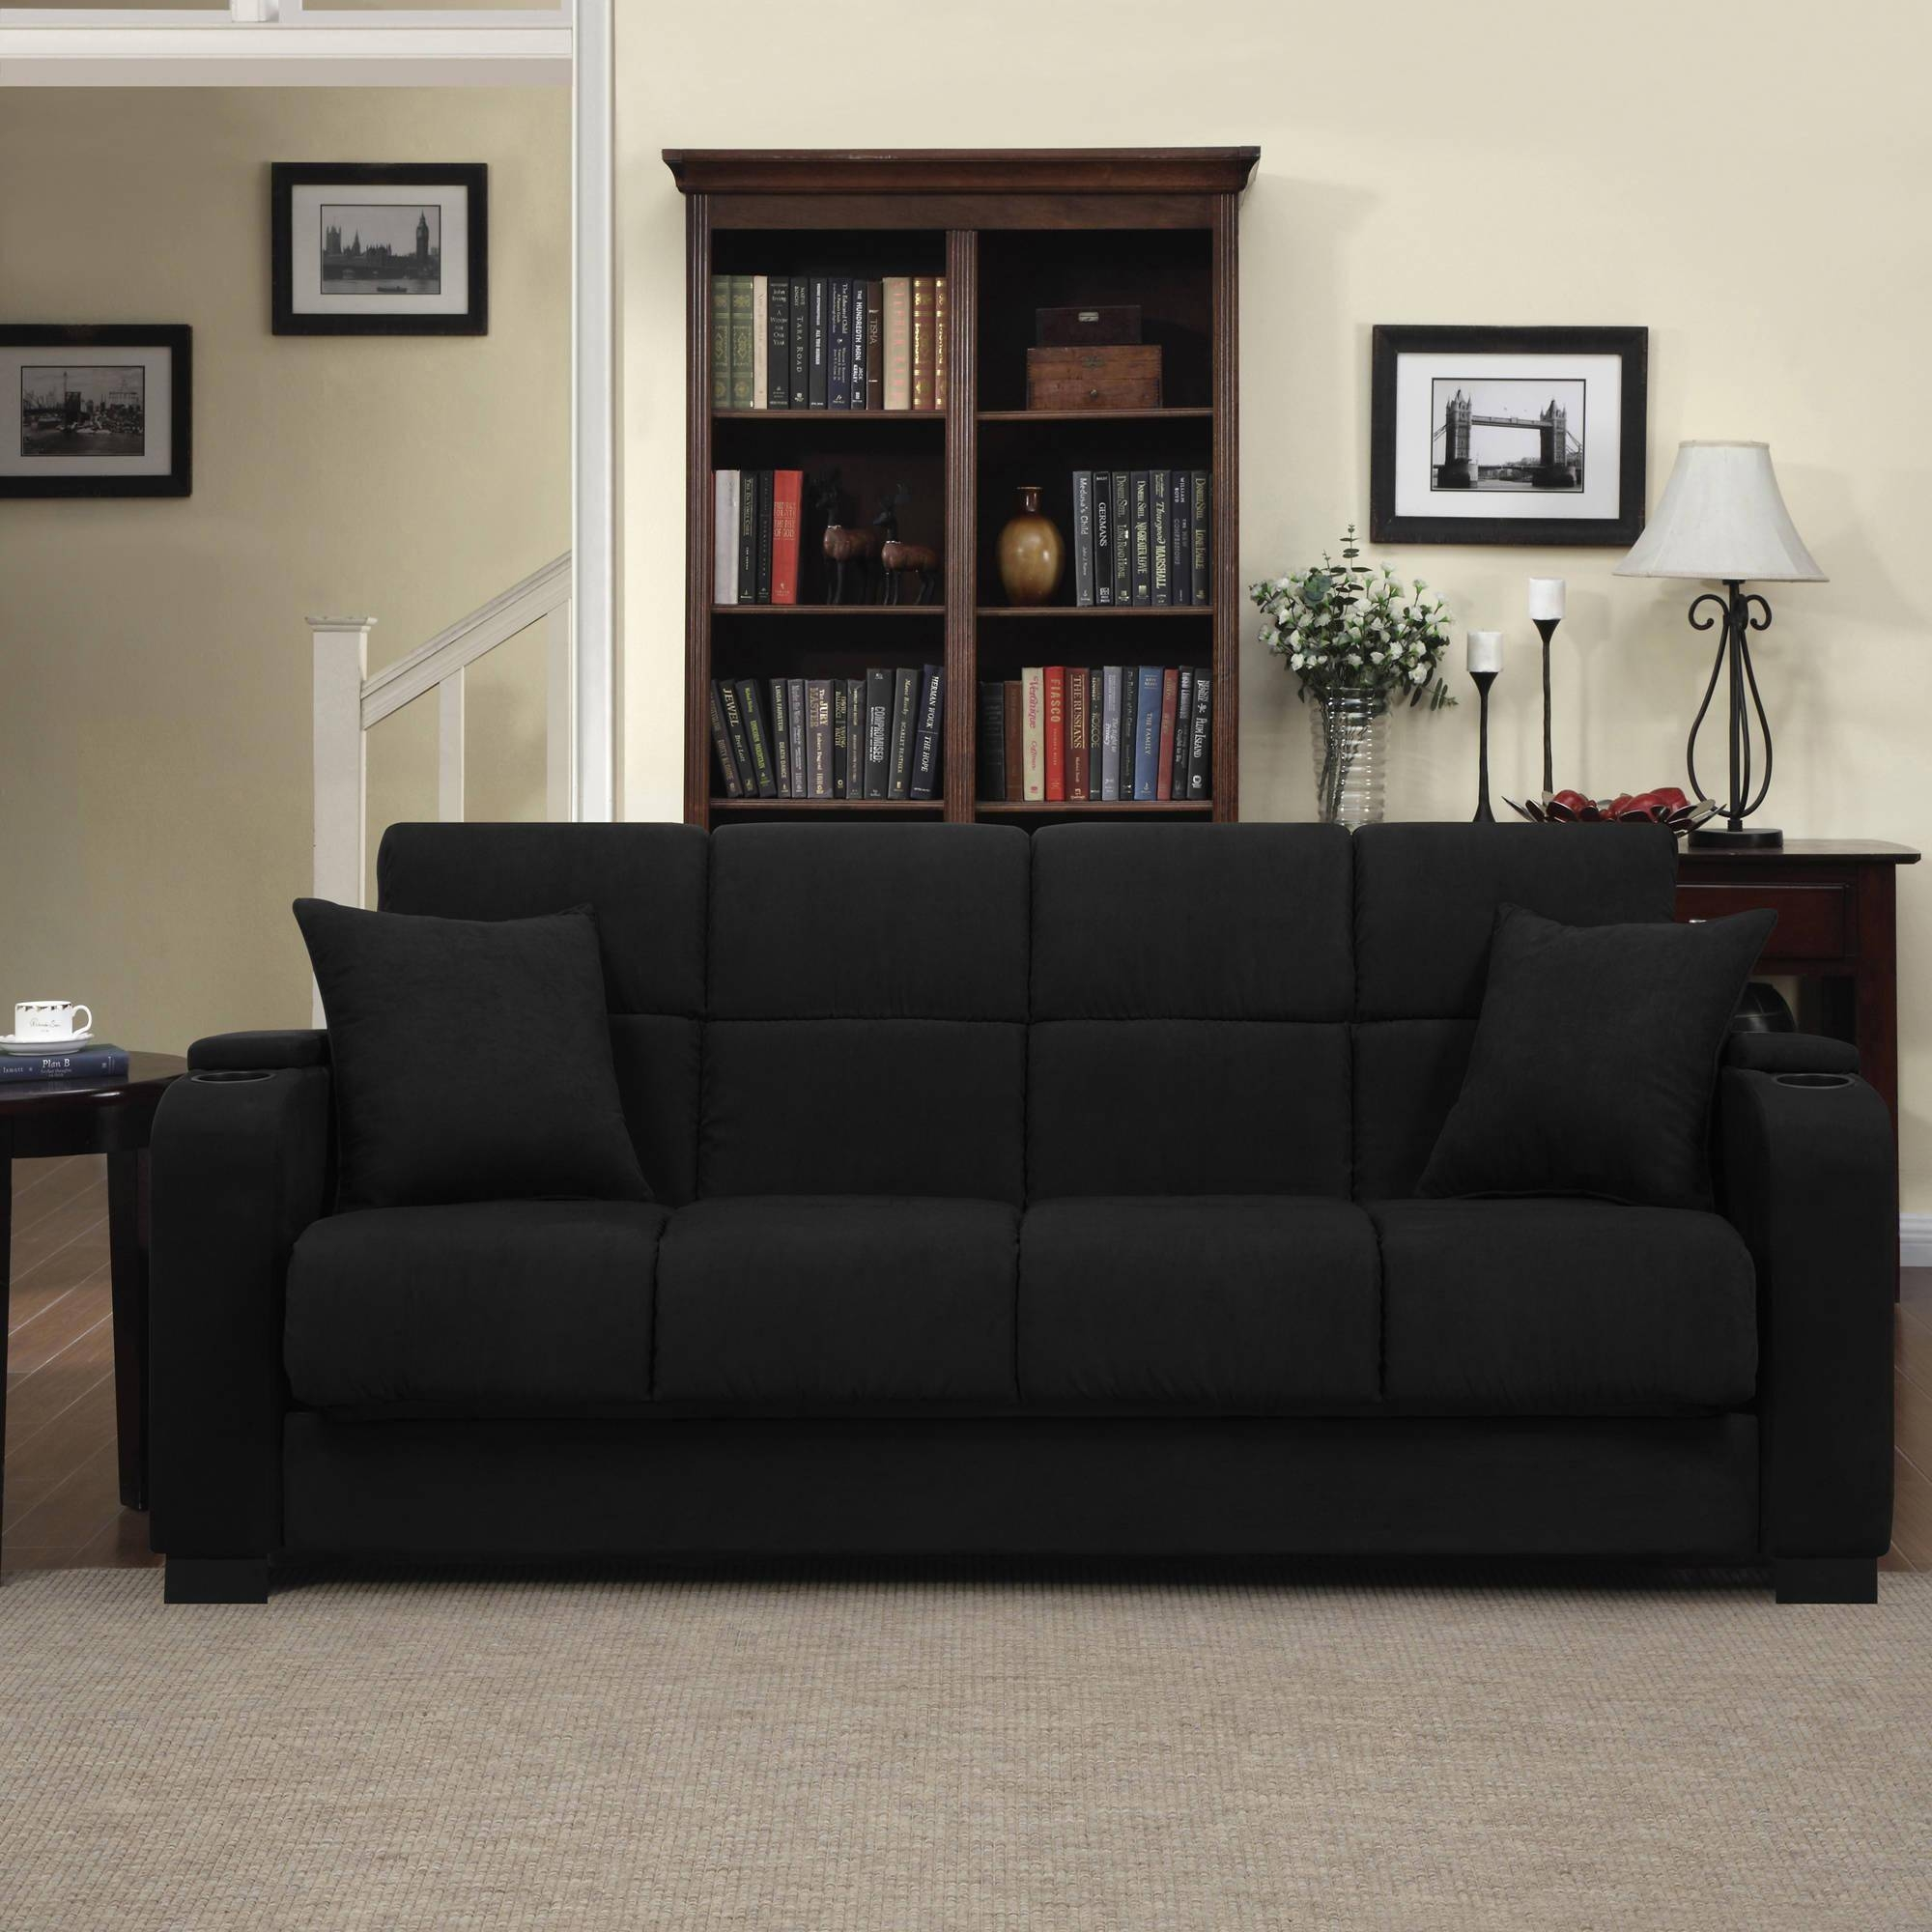 Furniture: Perfect Living Room With Sofa Slipcovers Walmart For inside Black Sofa Slipcovers (Image 5 of 15)